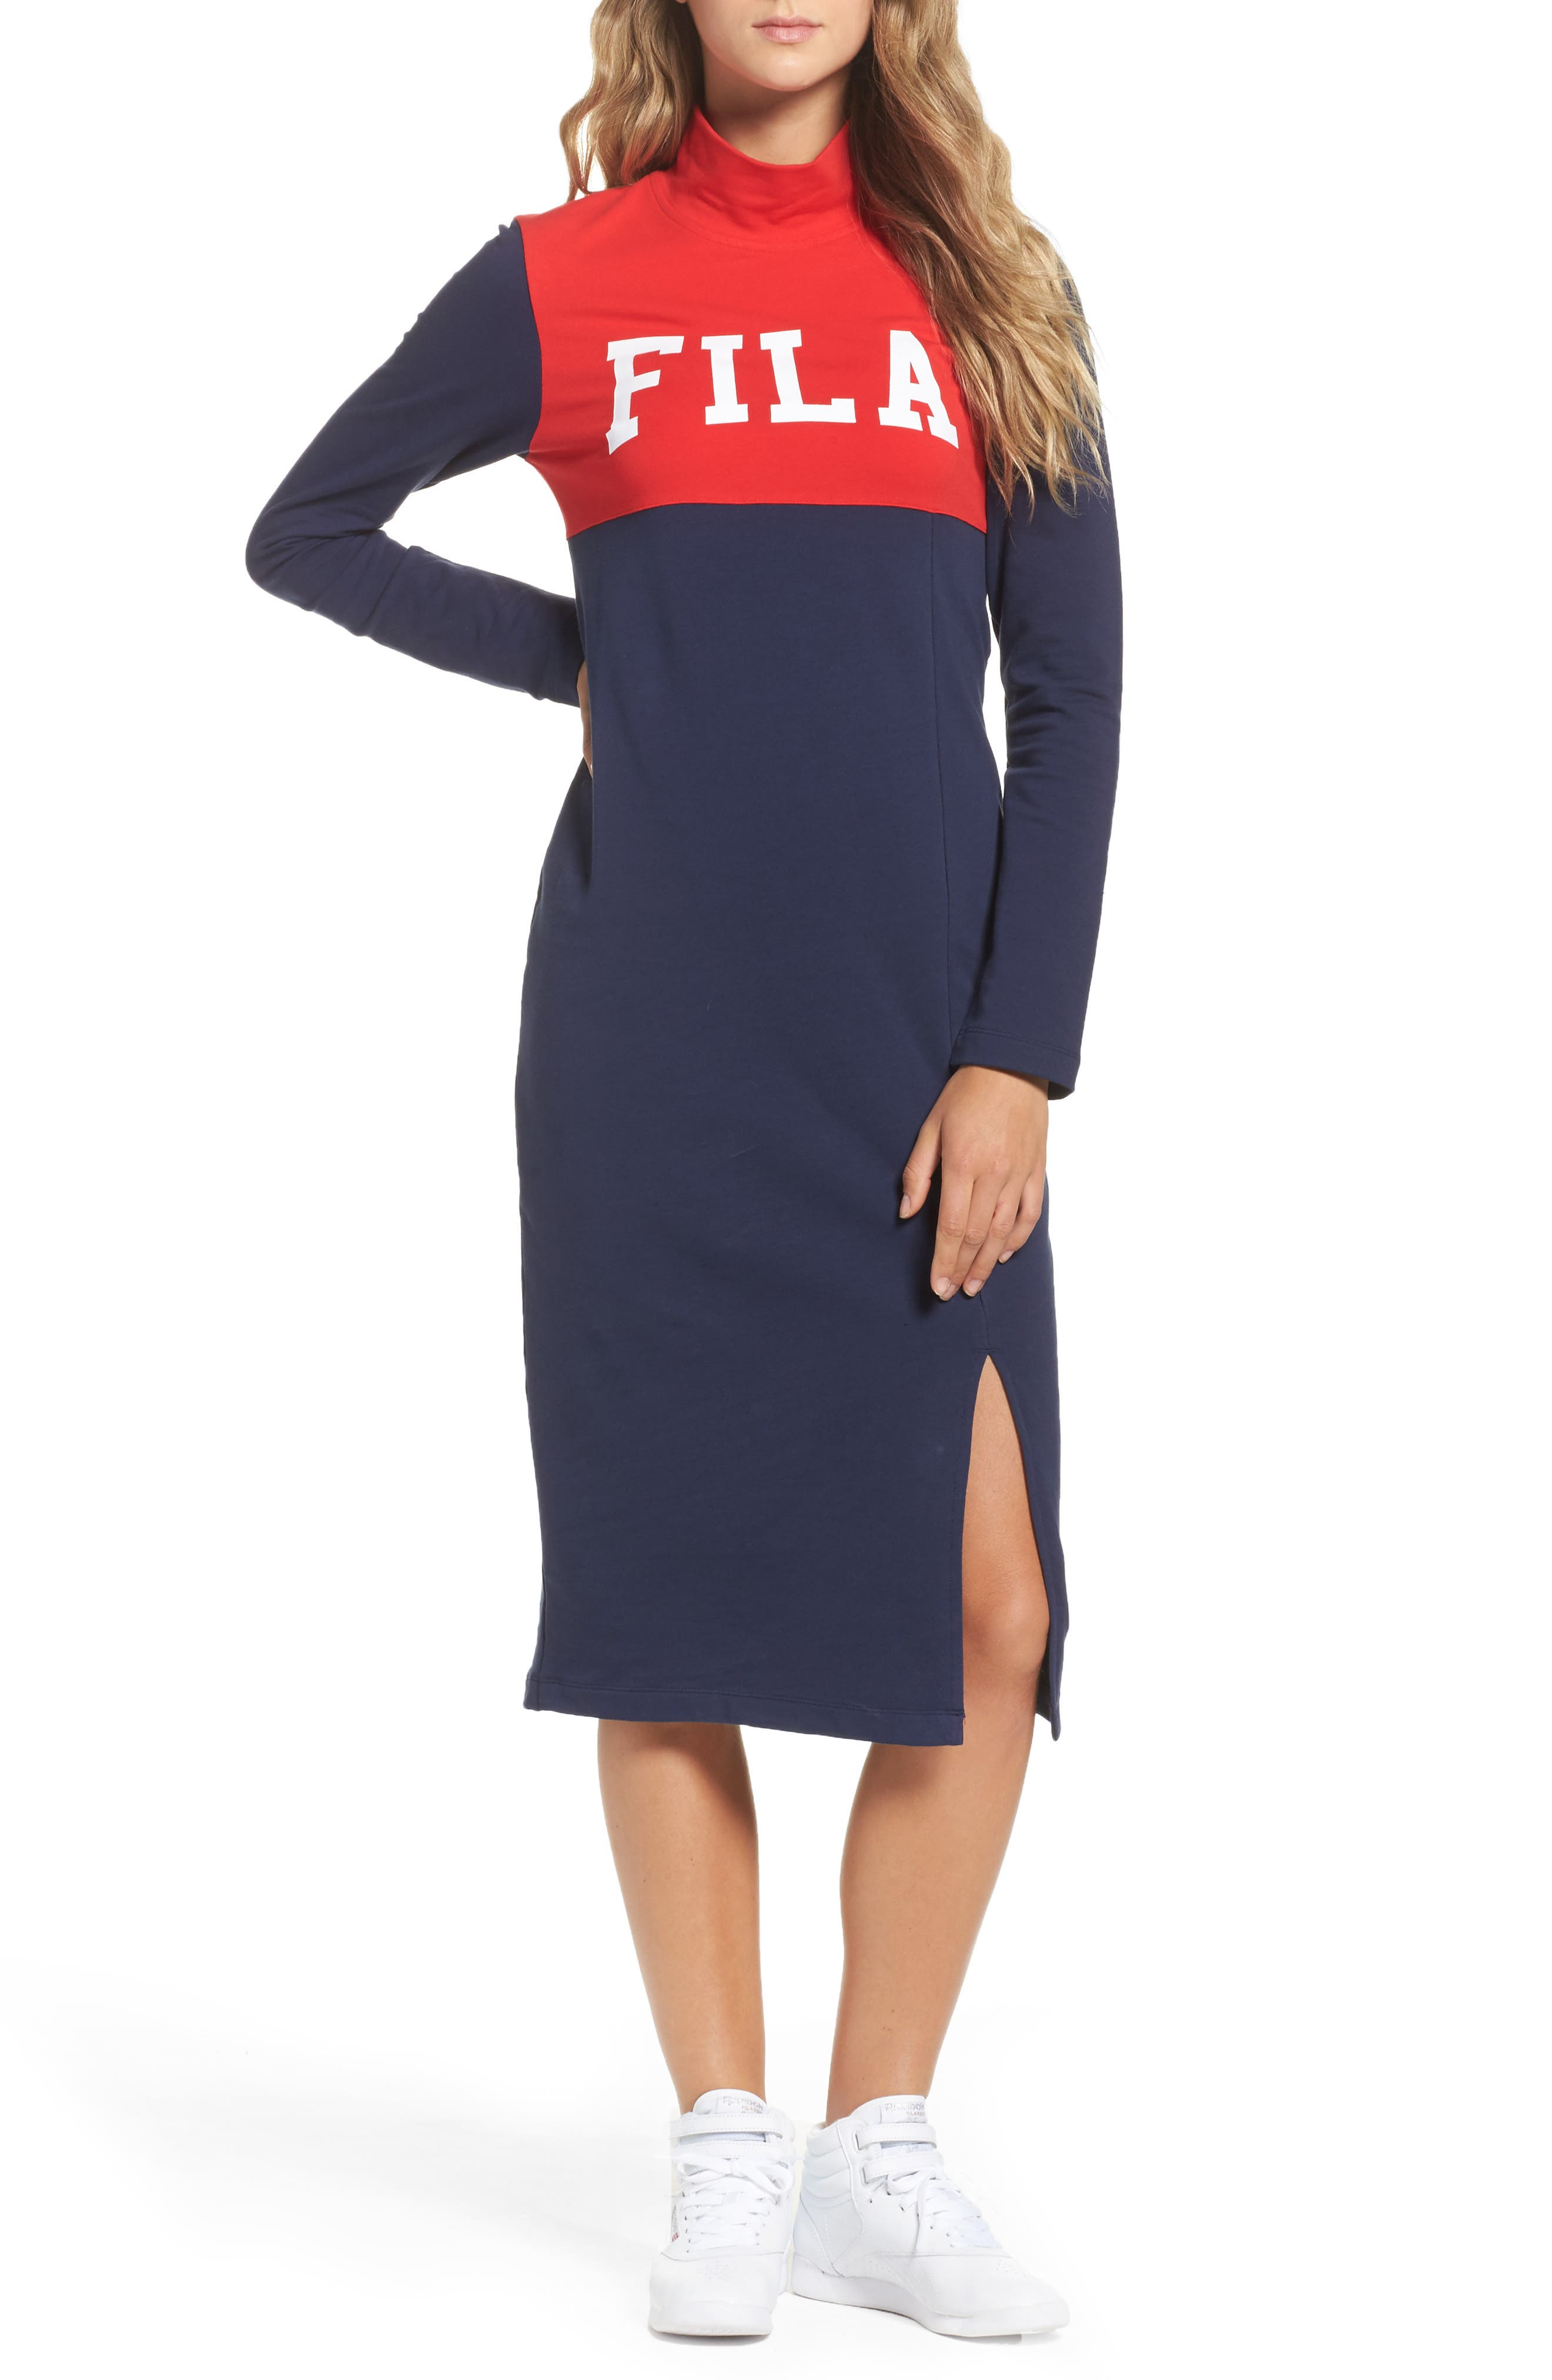 Rio Midi Dress,                         Main,                         color, Rio Red/ Navy/ Skyway